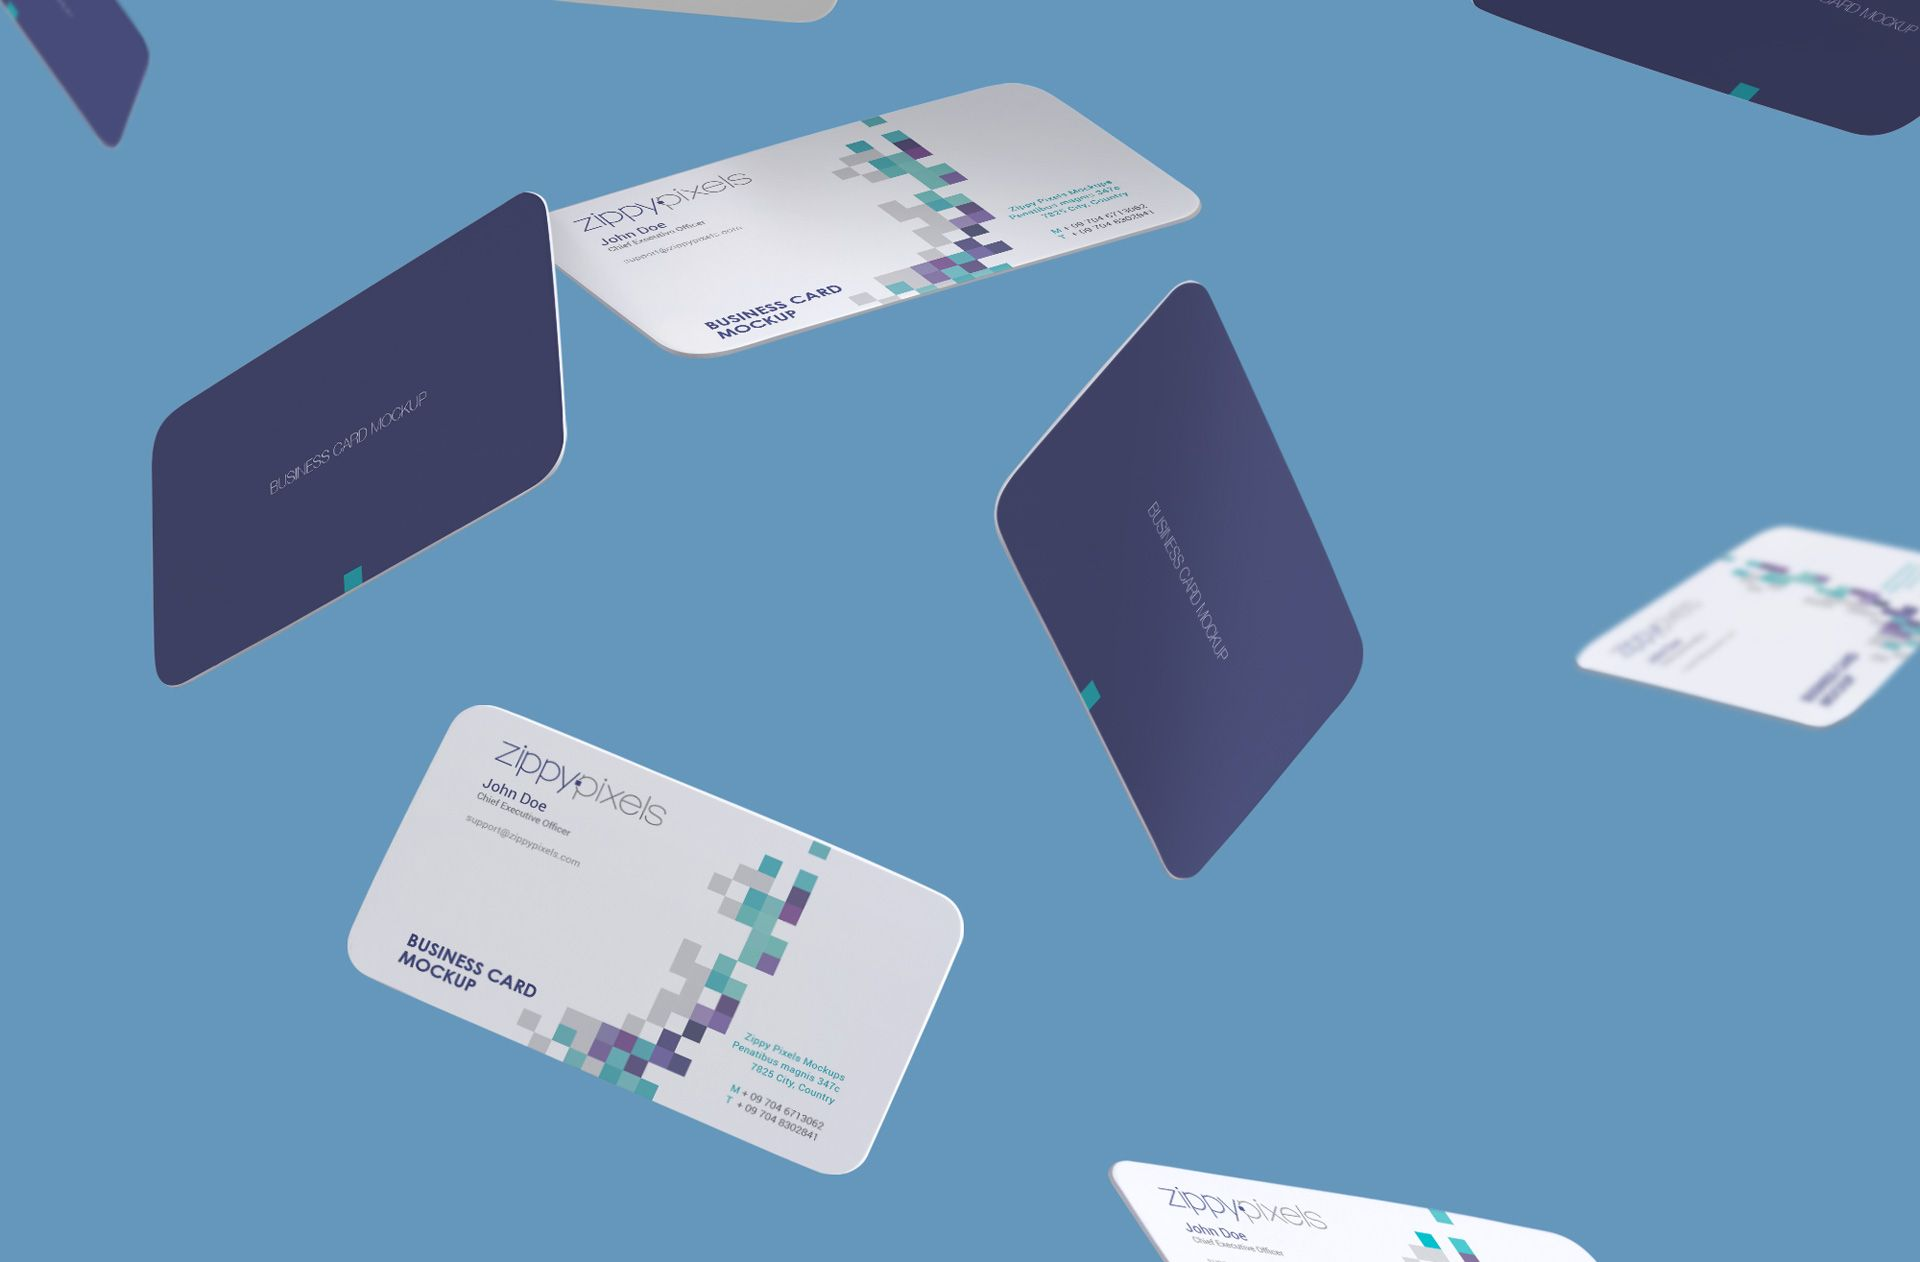 Free gravity business card mockup pinterest free gravity business card mockup with unilimted number of possibilities to showcase your business card designs reheart Image collections